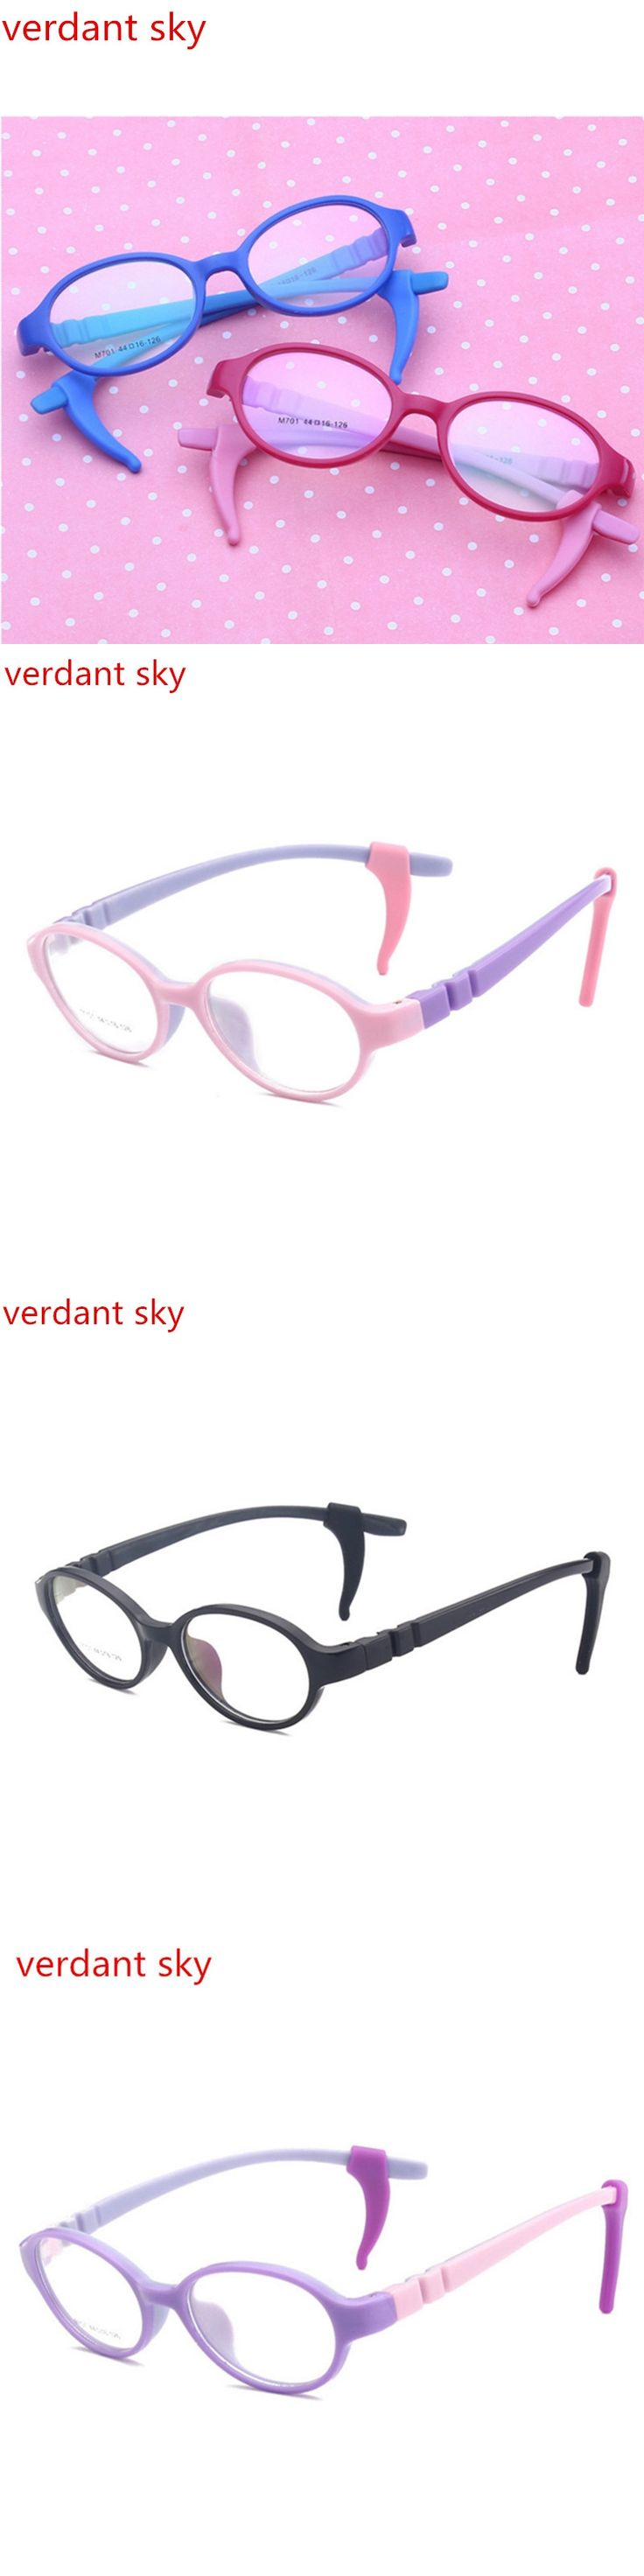 2017 Retro Silicone Children Clear Glasses Girls Boys Flexible Eyewear Frames Kids Glasses Frames Optical Spectacle Frames Child